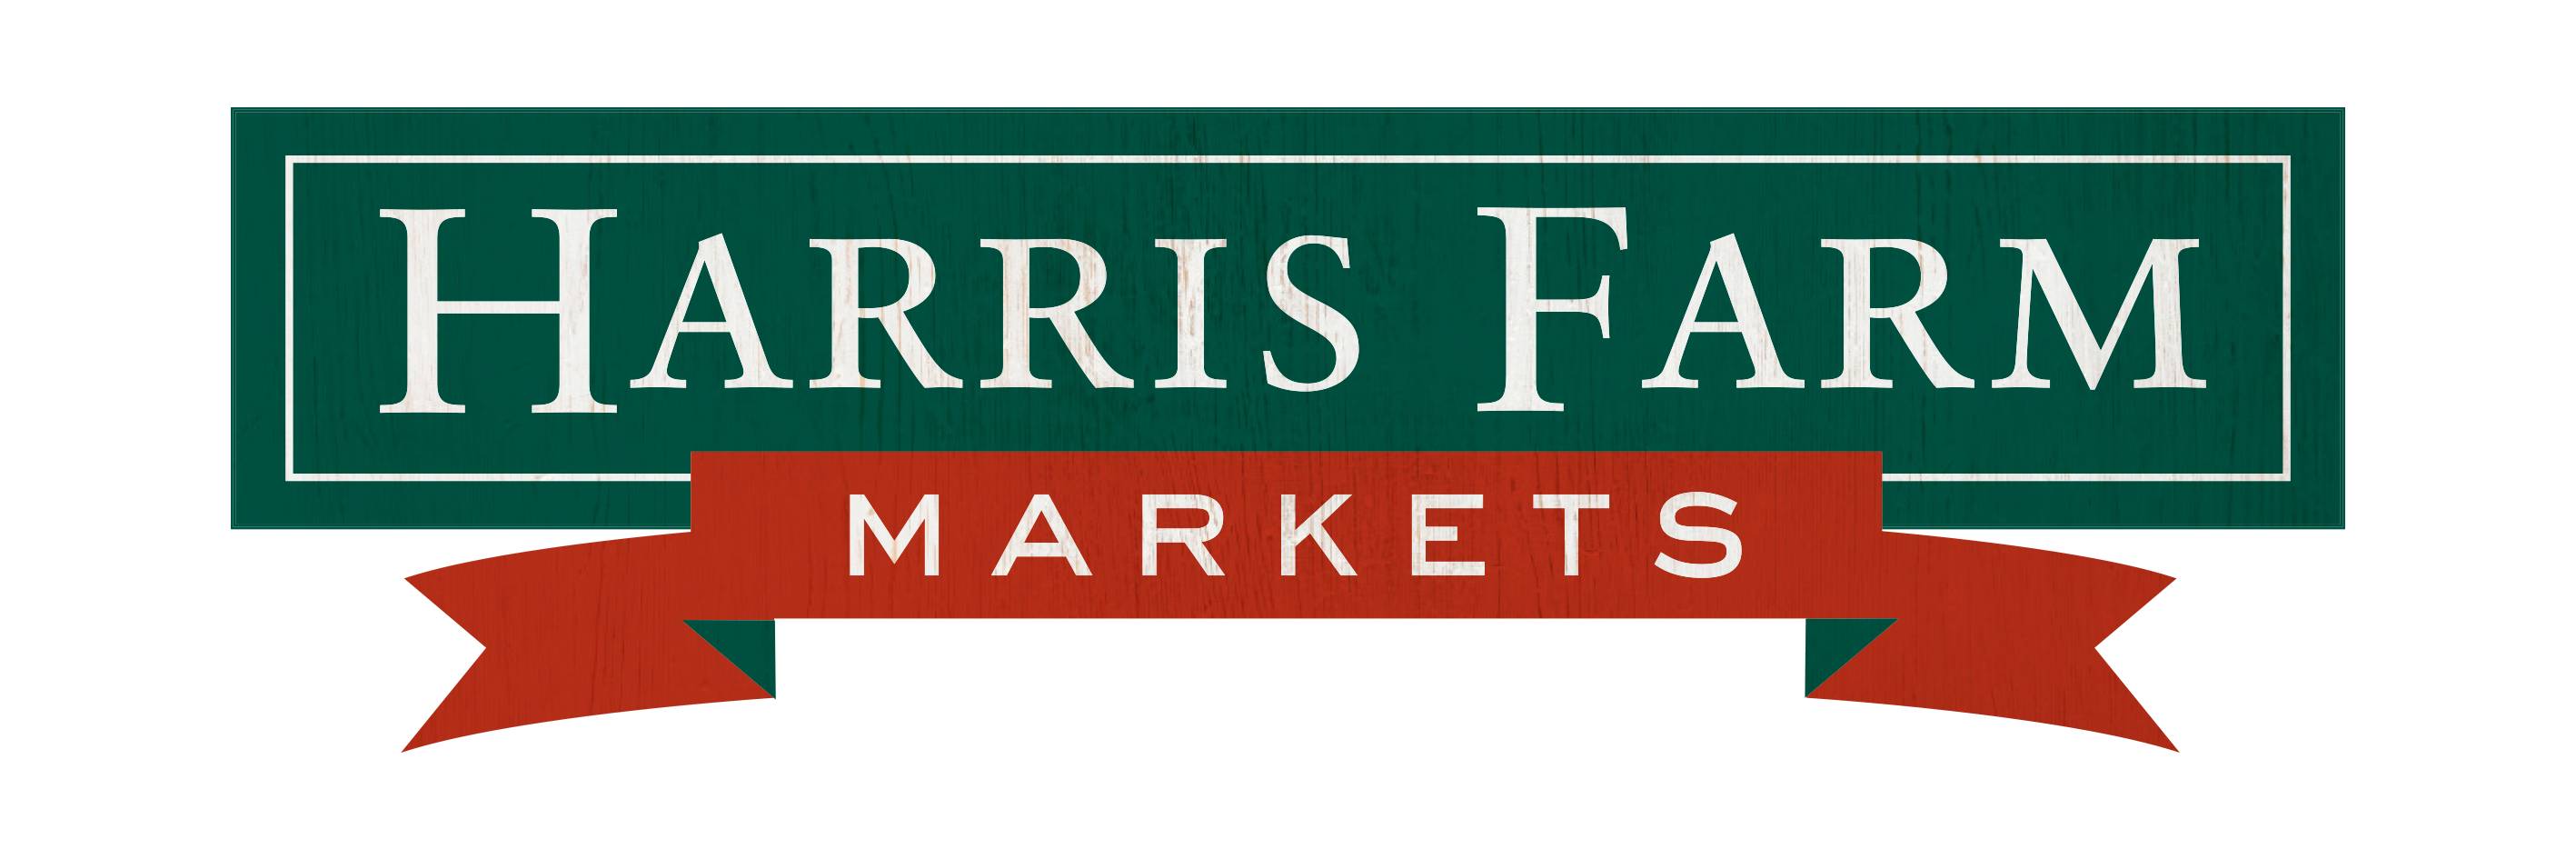 Harris Farm Markets Help Center home page